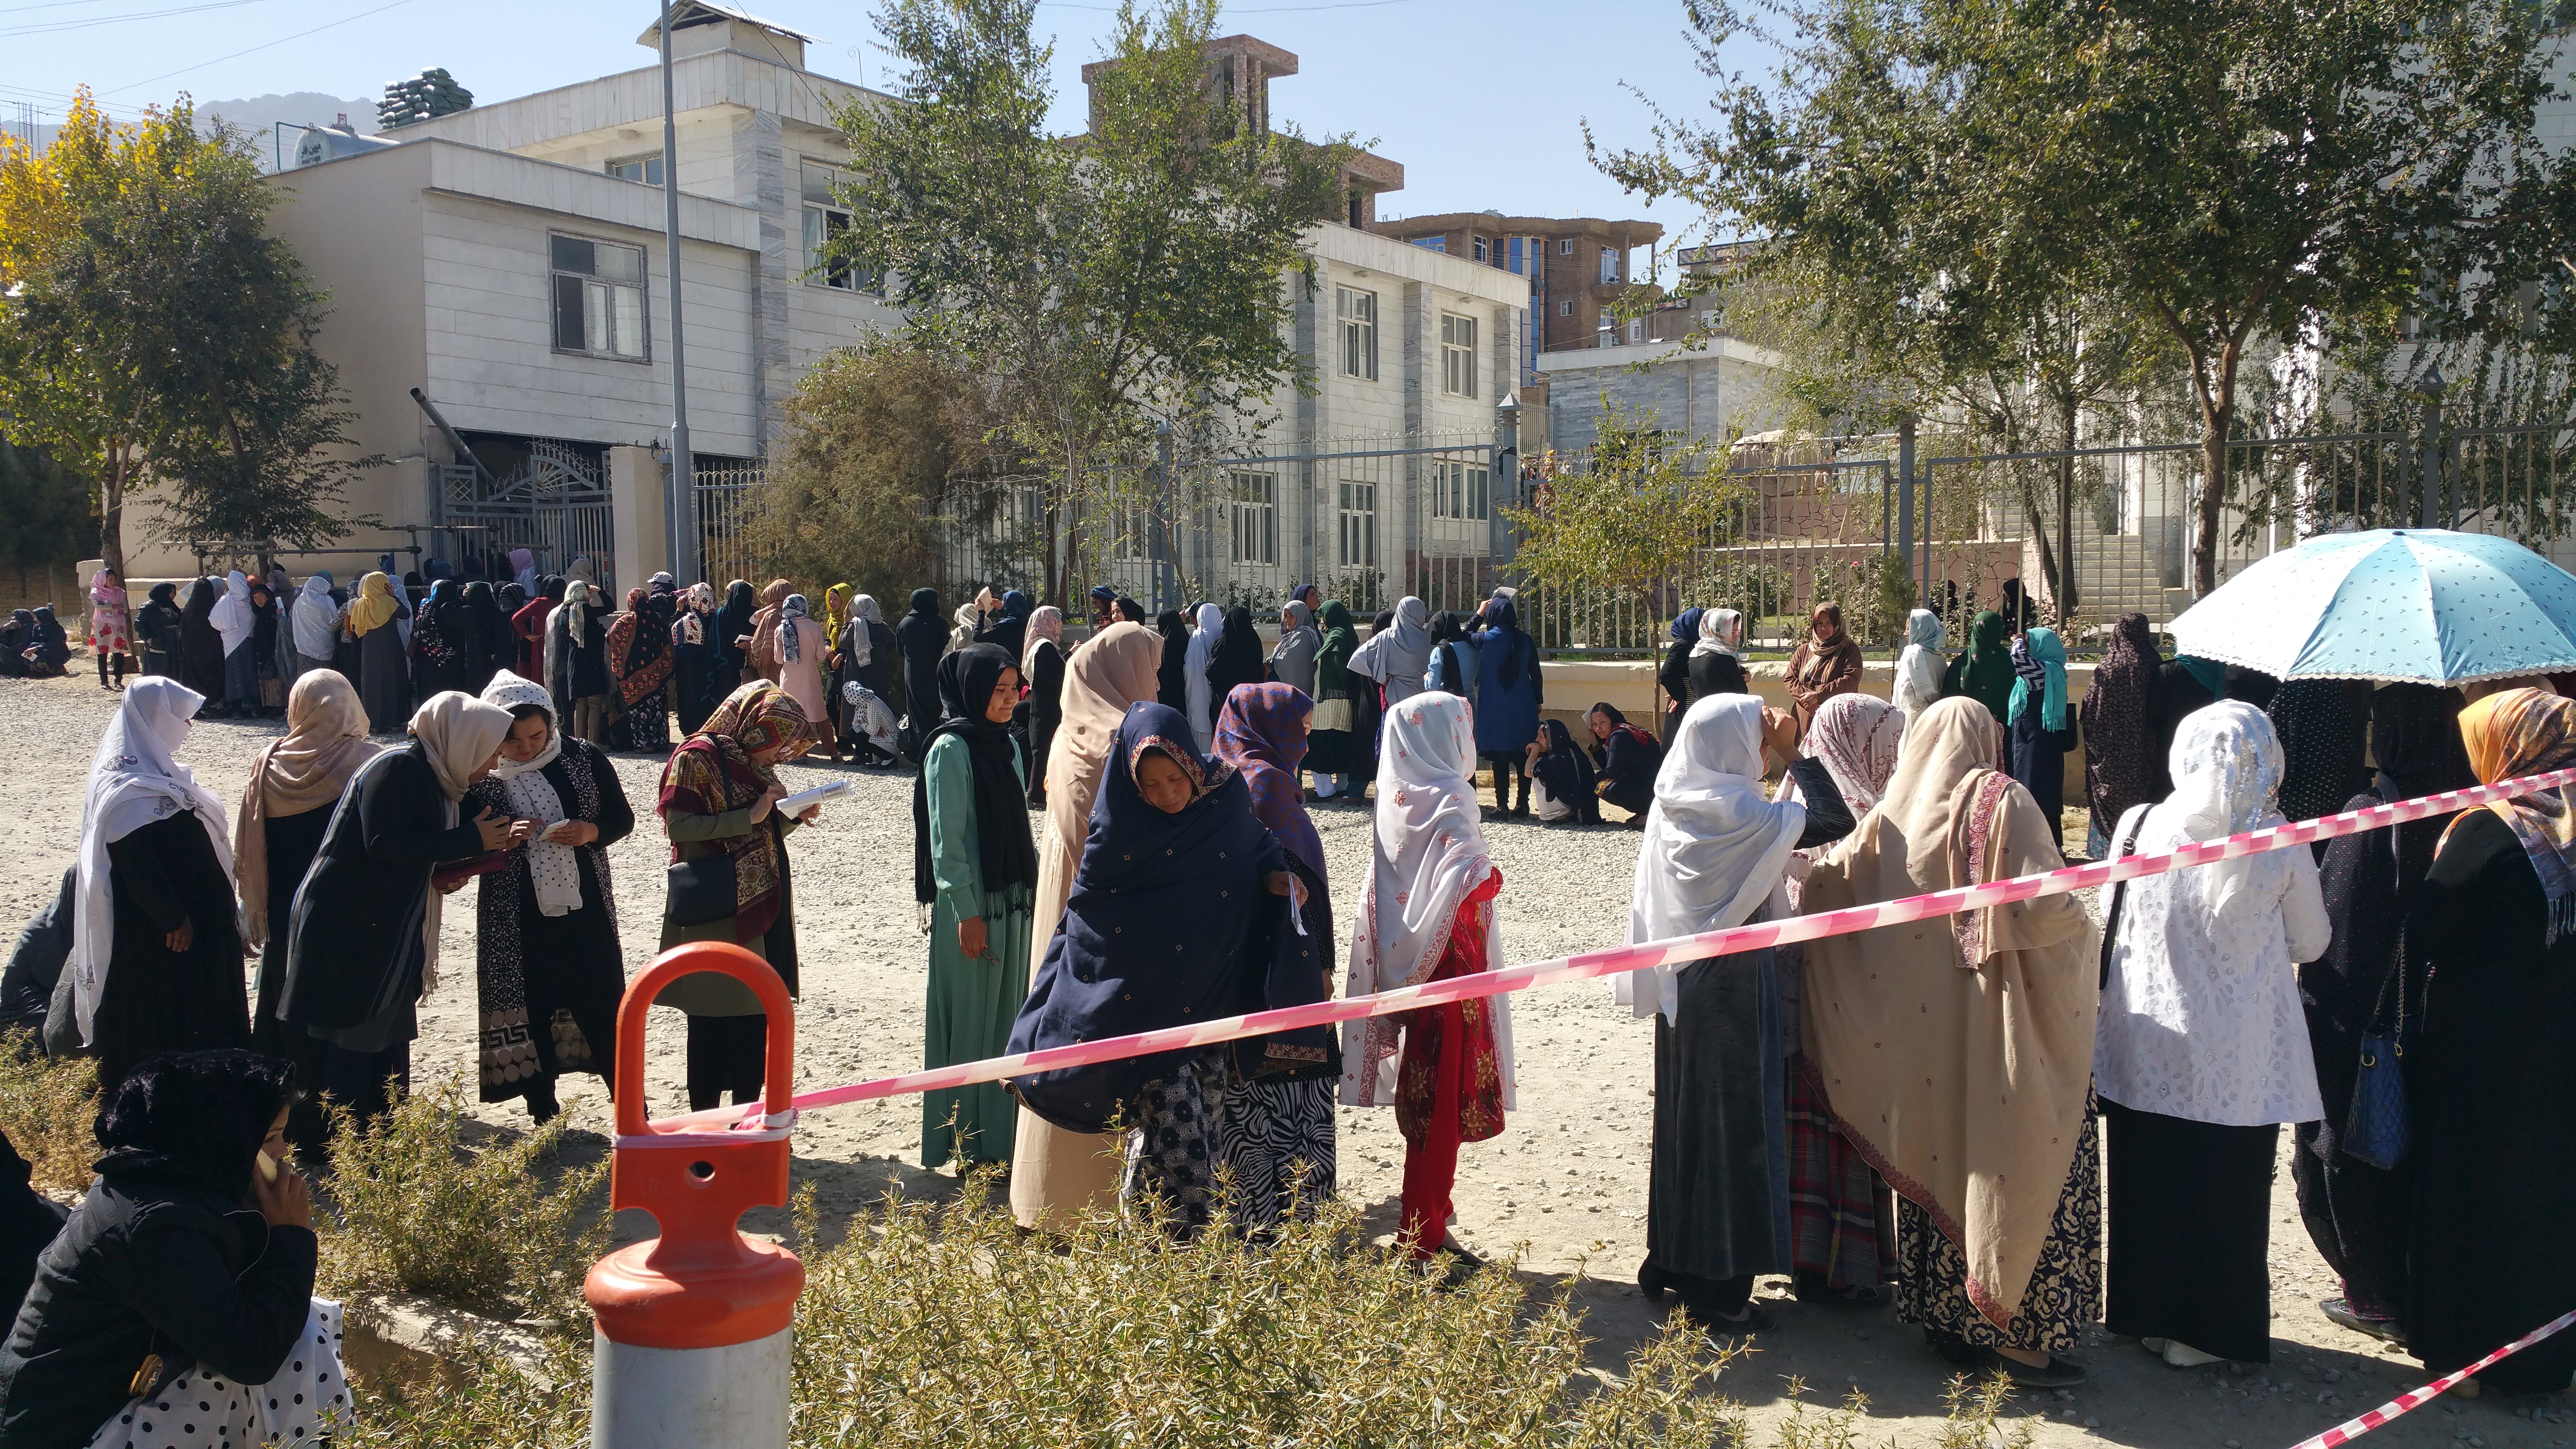 Women voters standing in the queue outside the polling stations to vote during the second day of the Afghan parliamentary elections on 21 October 2018. Photo Photo: Ali Yawar Adili